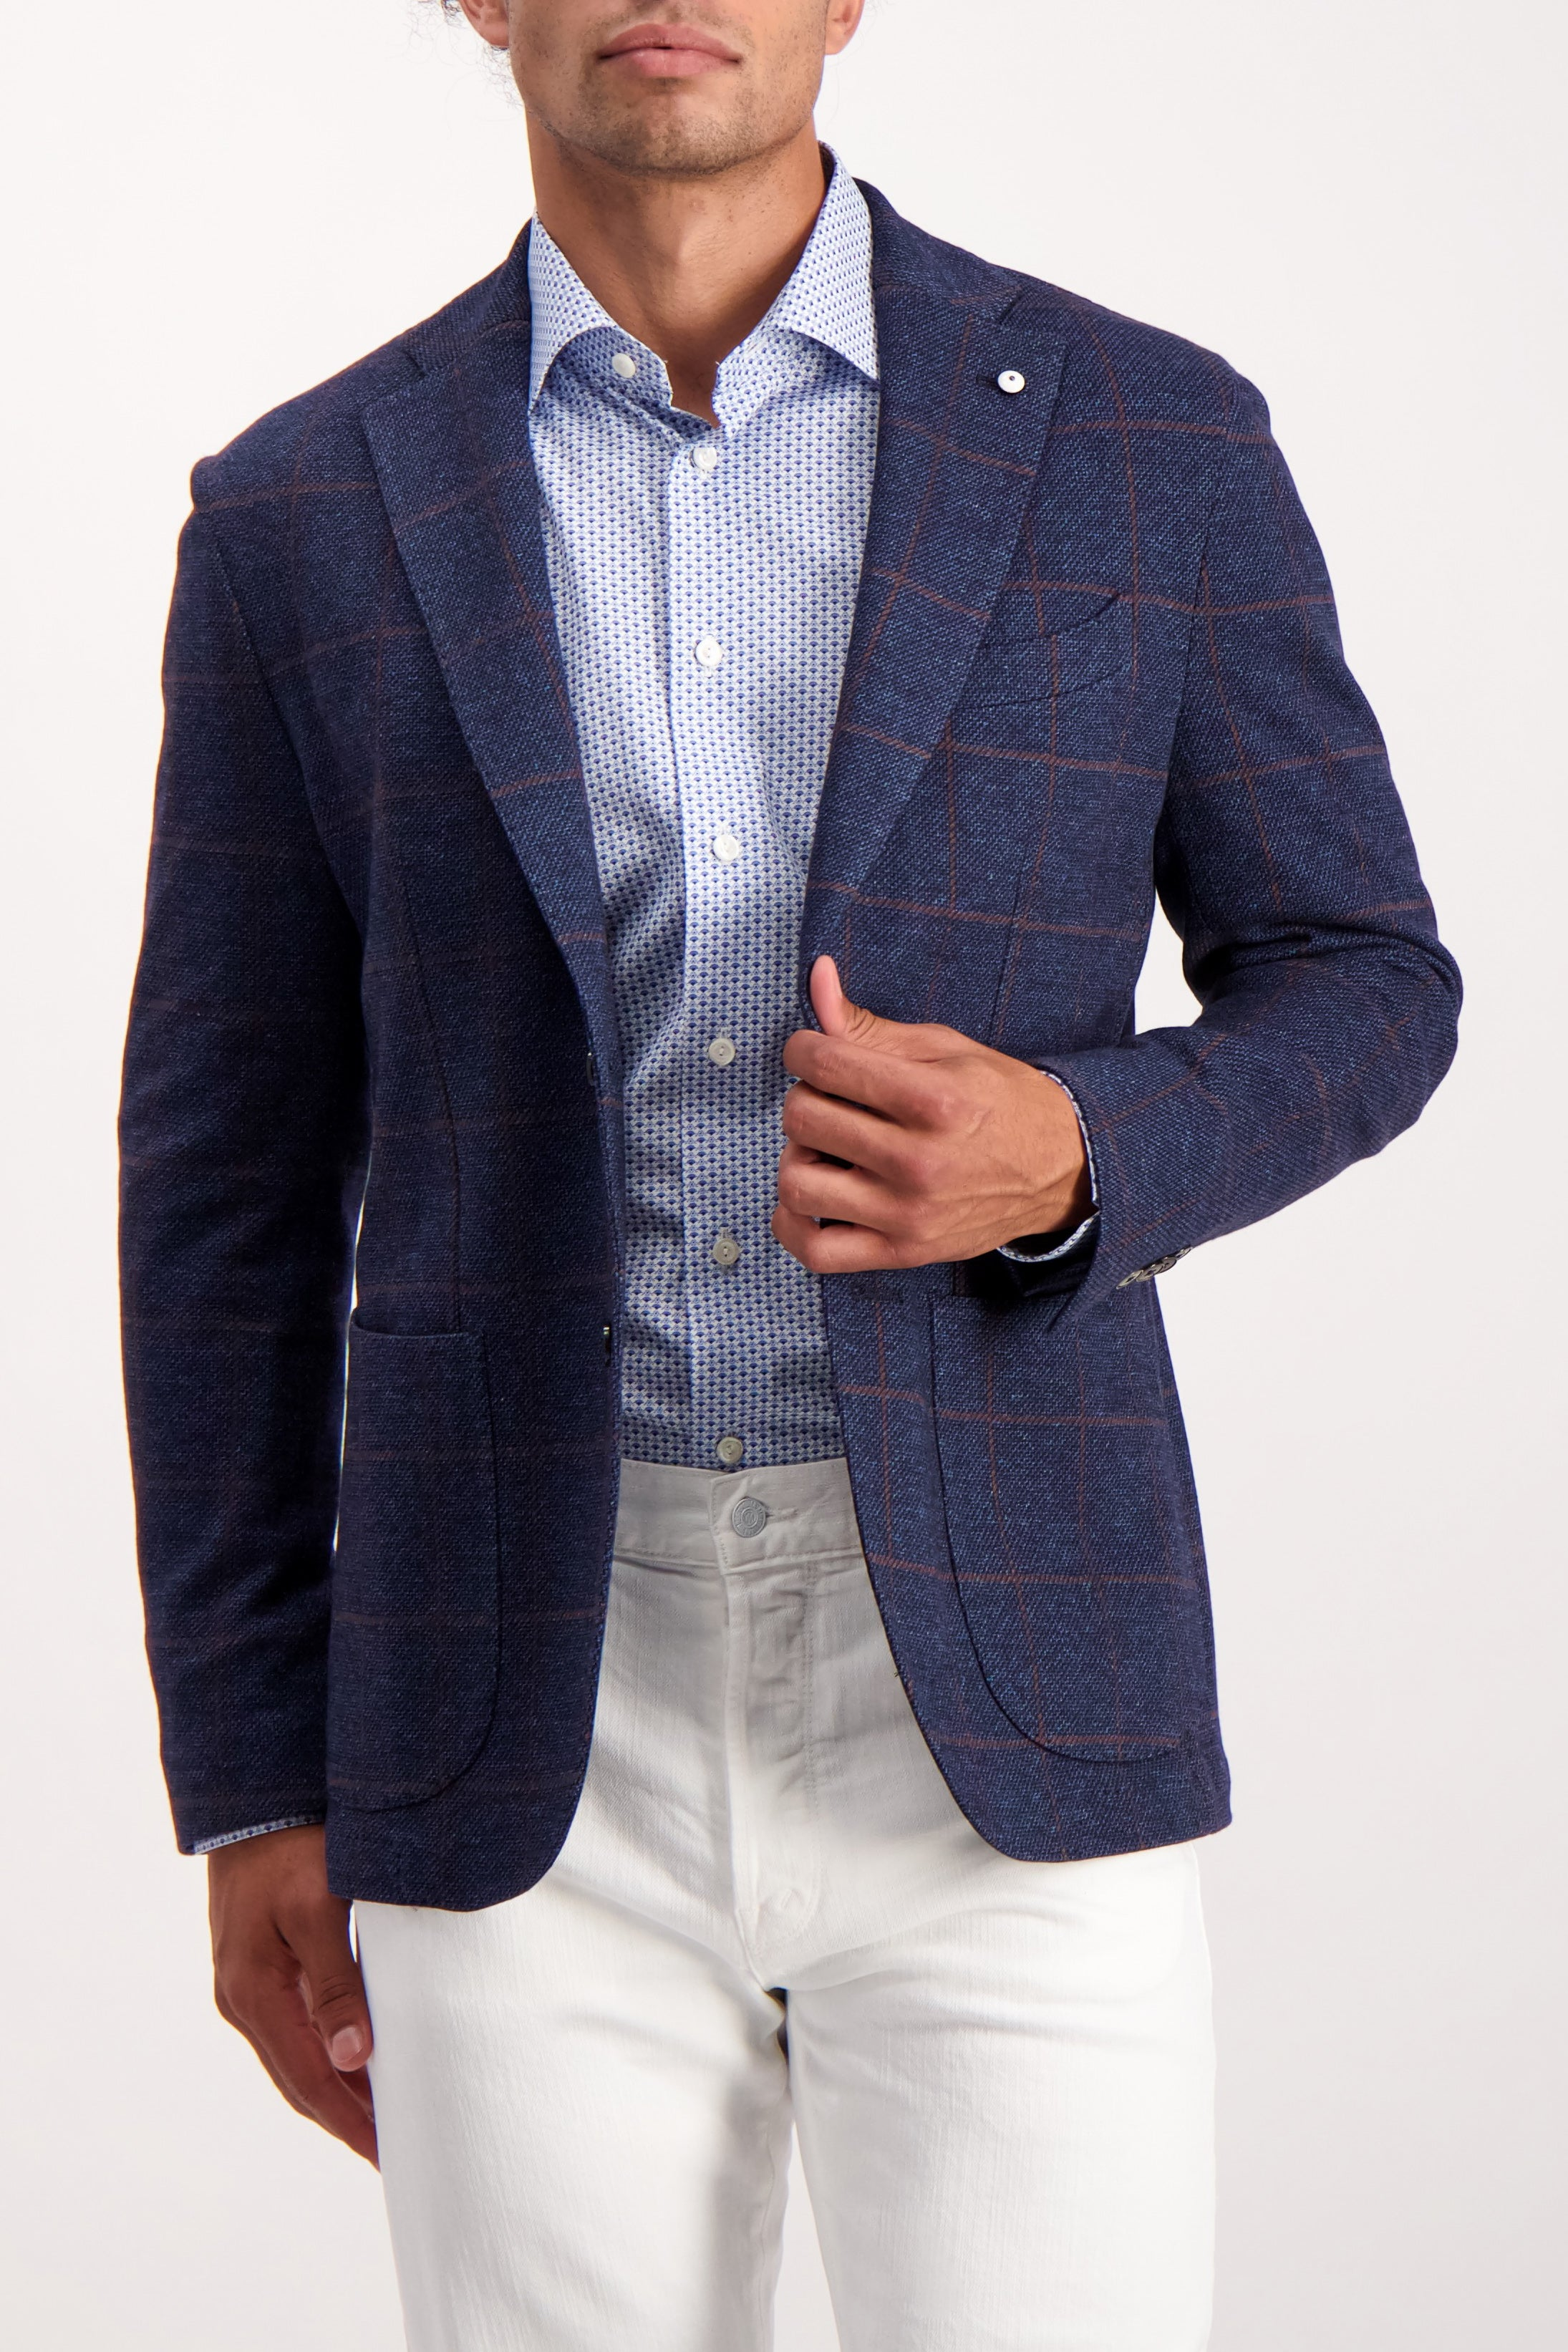 Front Crop Image Of Model Wearing L.B.M. 1911 Plaid Sportcoat